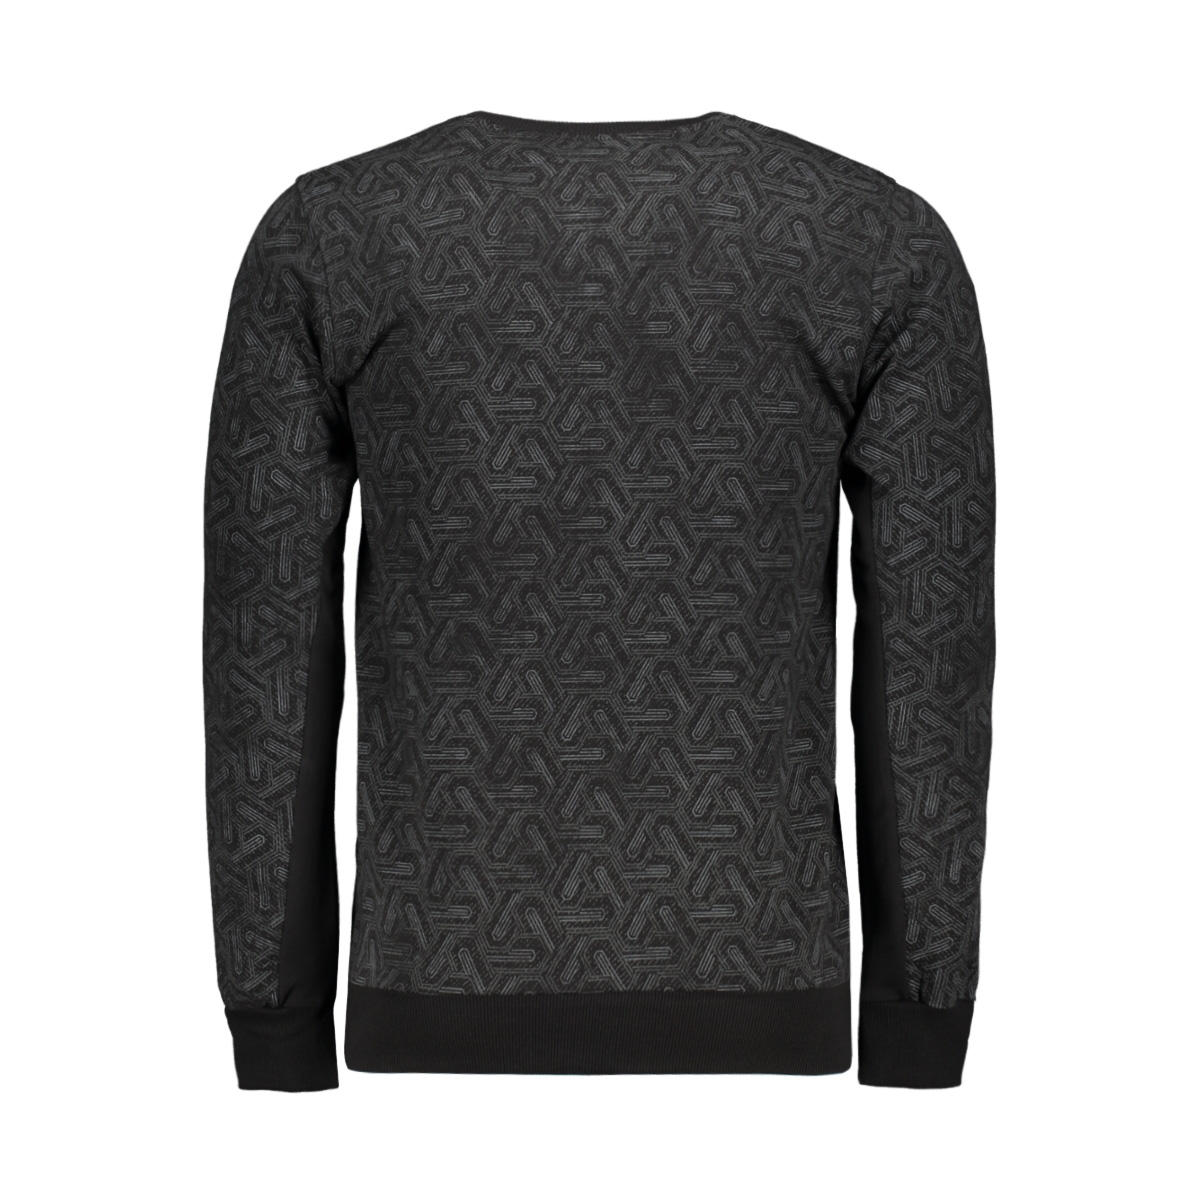 sweater 77083 gabbiano sweater black